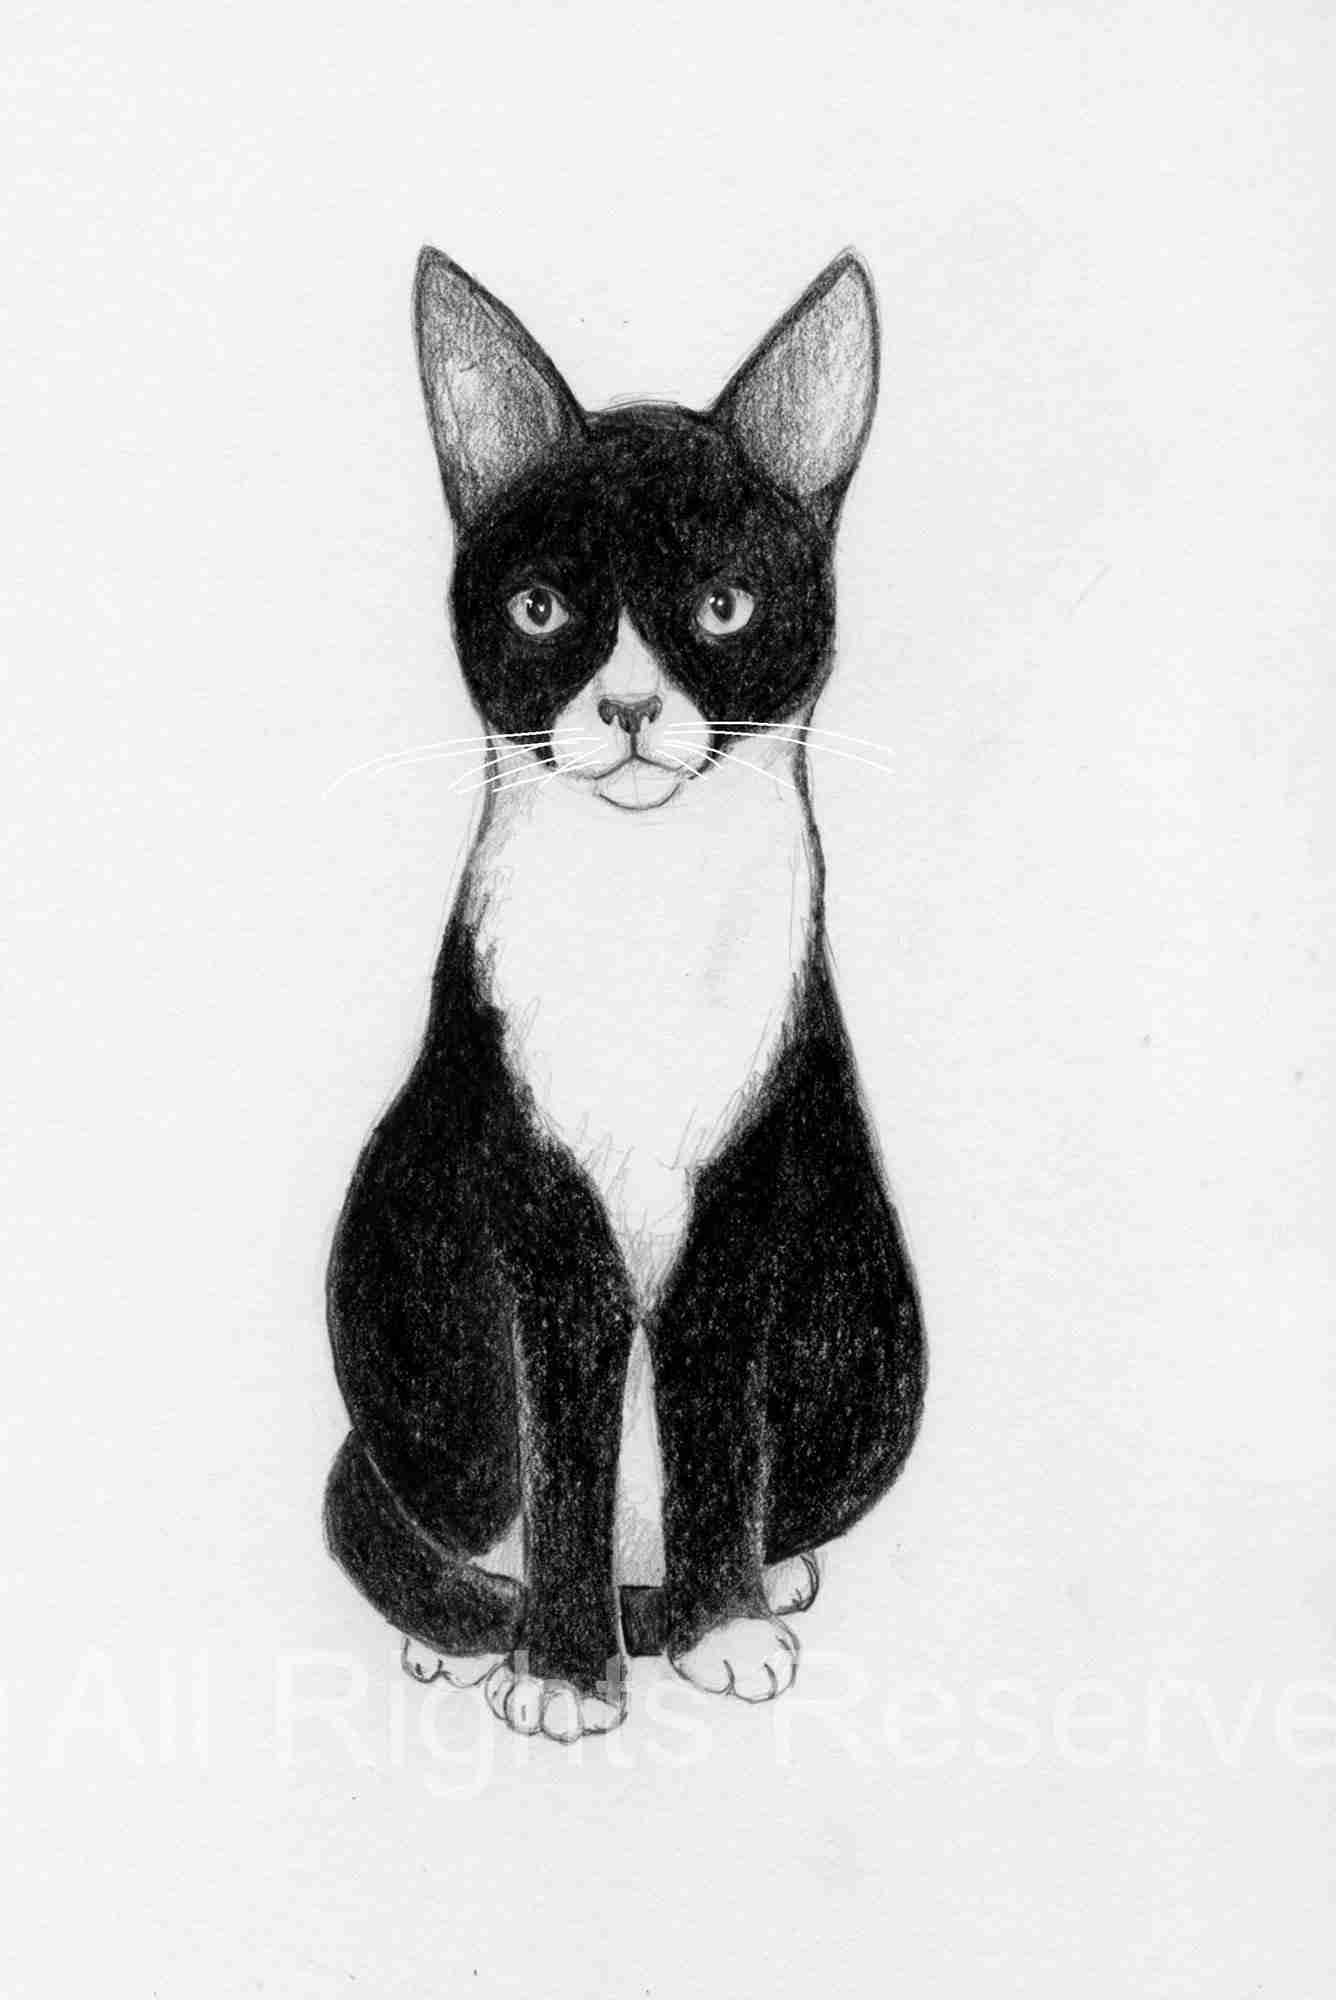 Drawing of a black and white kitten